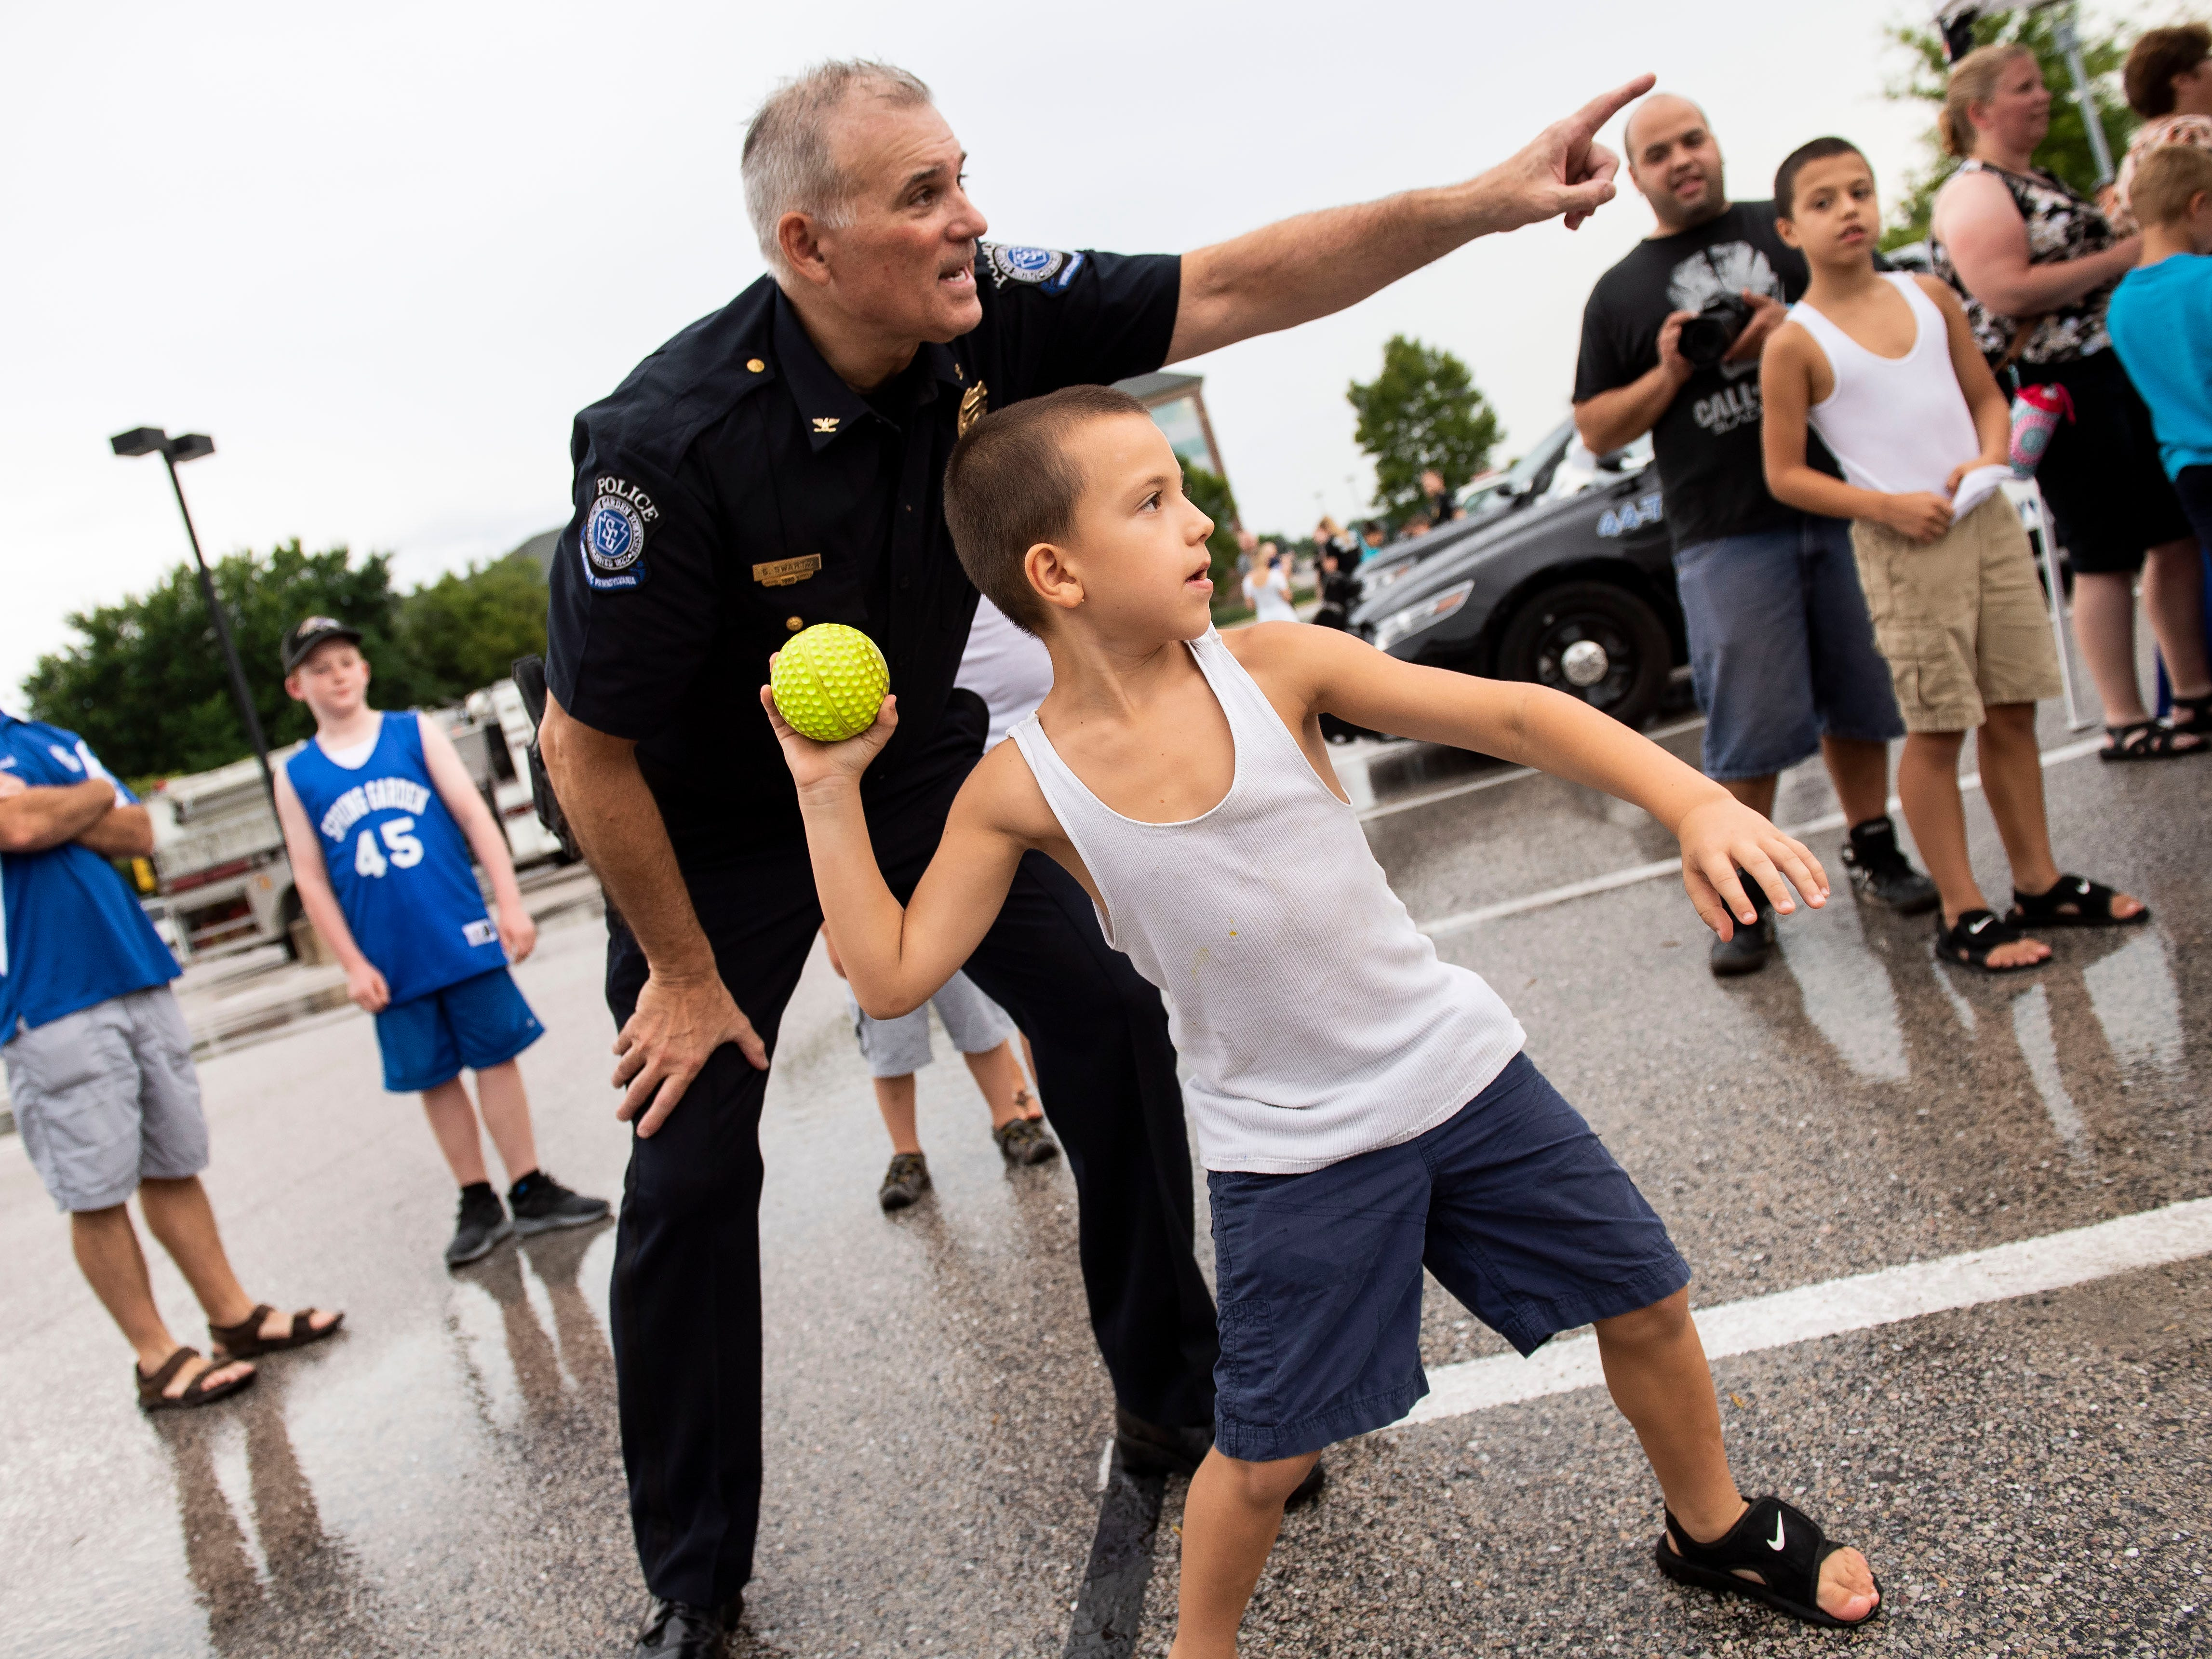 Spring Garden Township police chief George Swartz Jr. points toward the net as Orlando Cruz III, 6, of Spring Garden, winds up to throw a ball toward a police speed radar during National Night Out at York College on Tuesday, August 7, 2018. National Night Out is an annual community-building campaign that promotes police-community partnerships and neighborhood camaraderie, according to the National Association of Town Watch website.